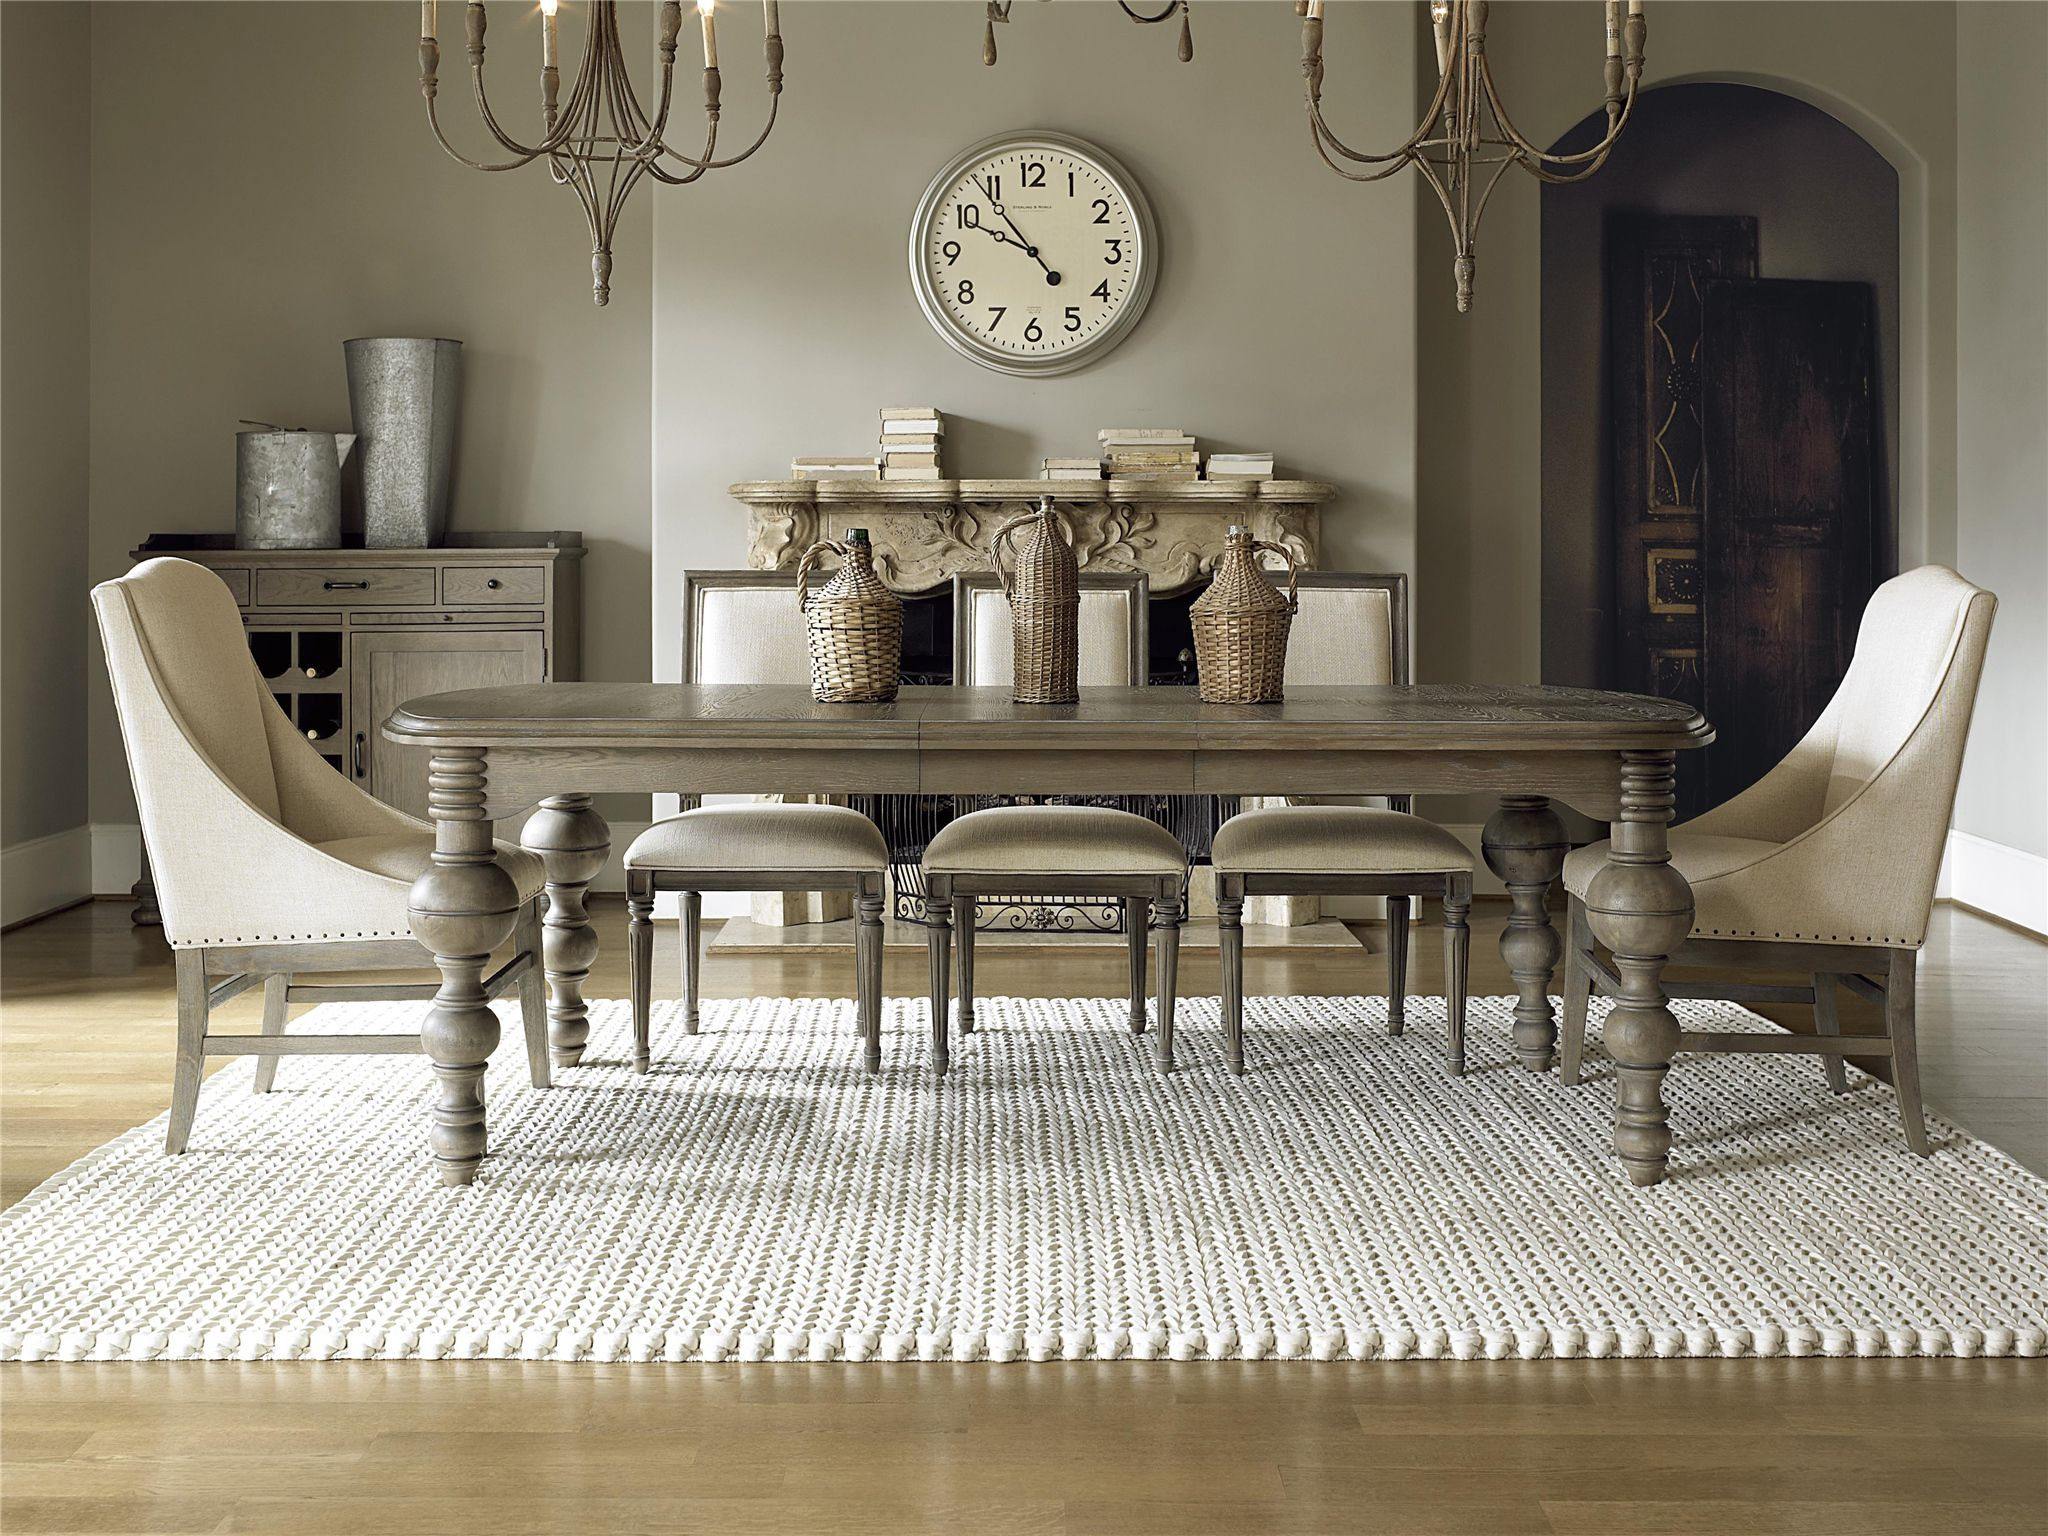 French country furniture modern wood furniture check more at http searchfororangecountyhomes